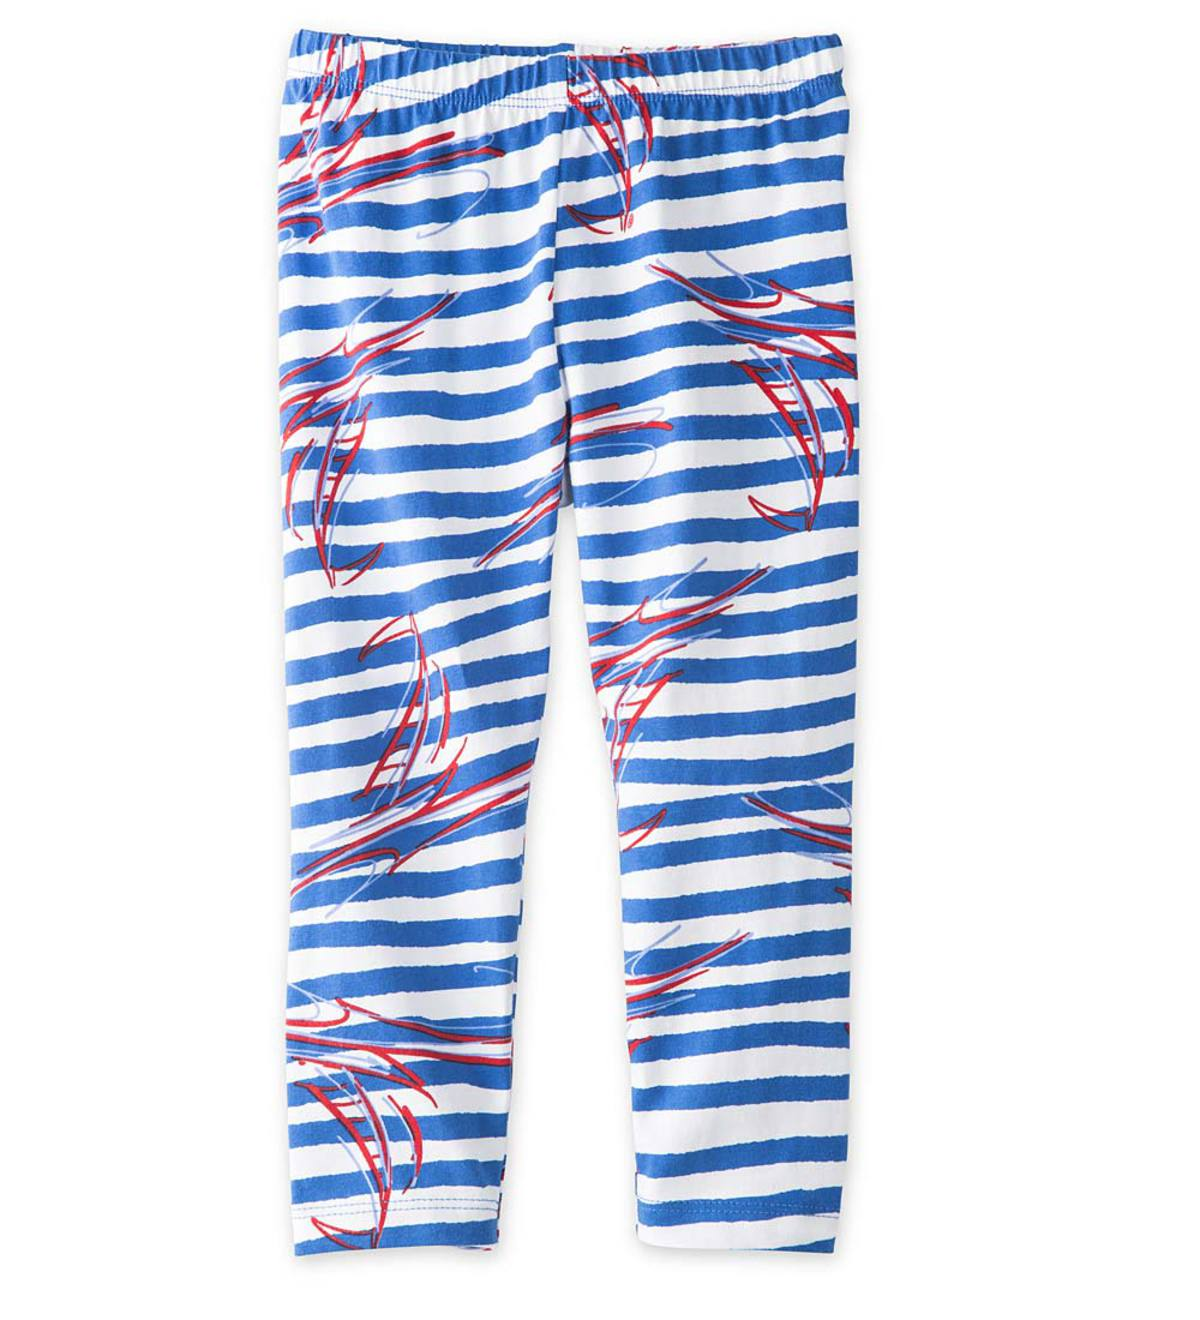 Boats and Stripes Leggings - BL - 7